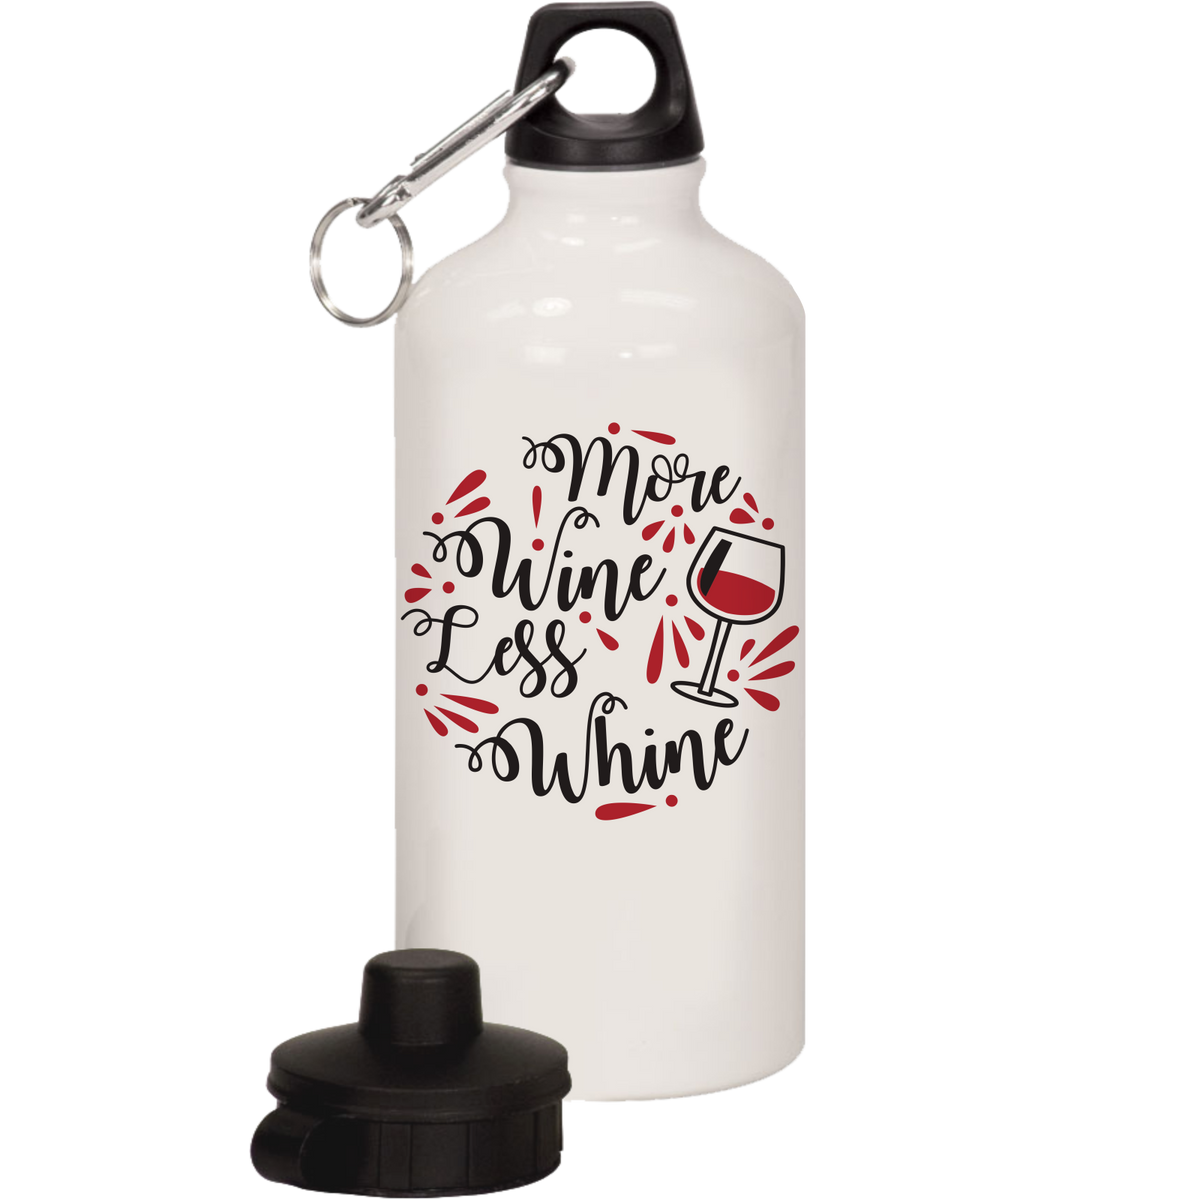 More wine less whine - 20oz. Water Bottle with Interchangeable Lids